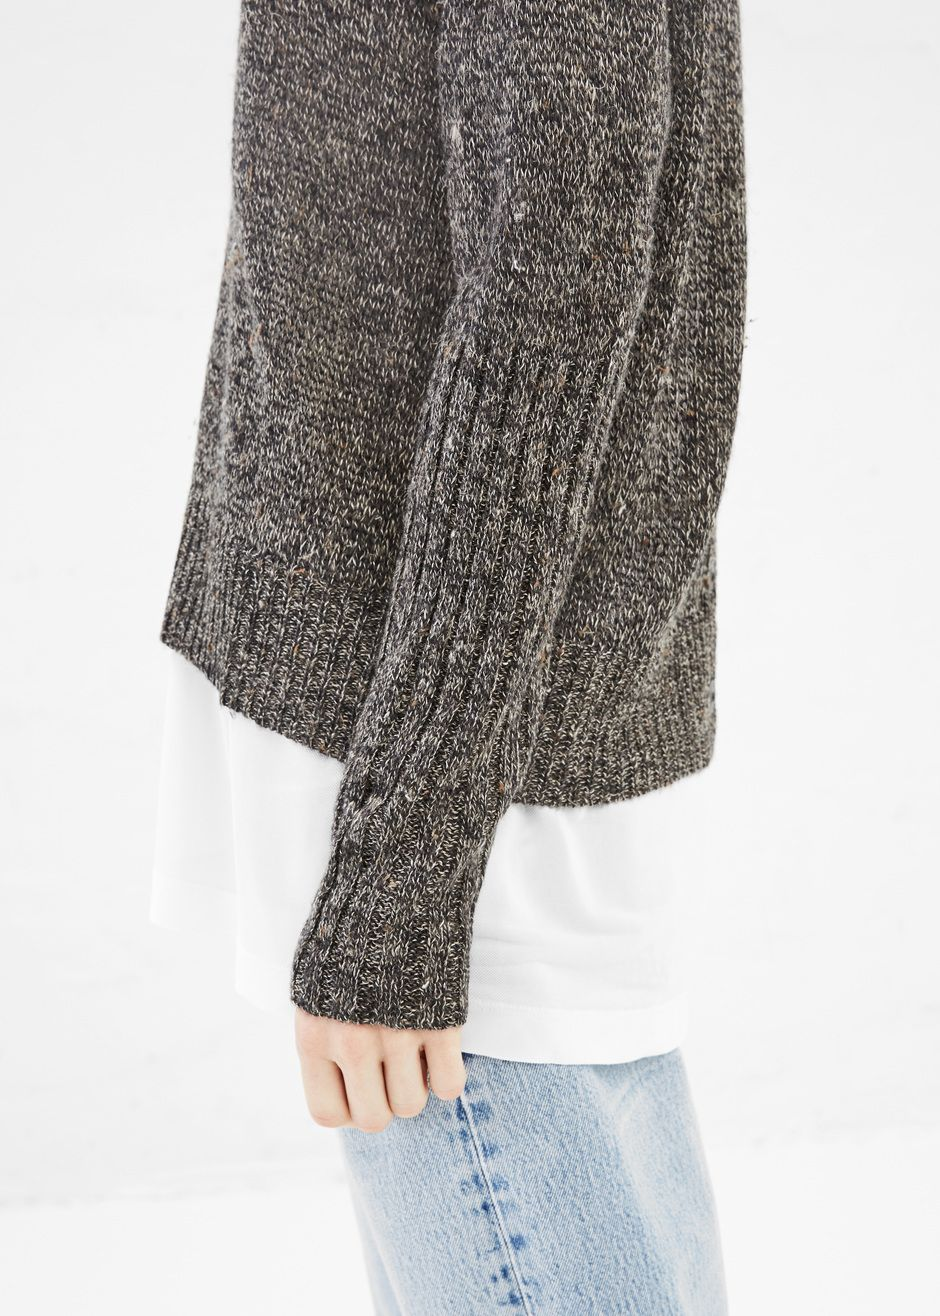 Affordable Online KNITWEAR - Cardigans Hope Collection Free Shipping Geniue Stockist Free Shipping Ebay Store With Big Discount Buy Cheap Manchester GOYbQ0